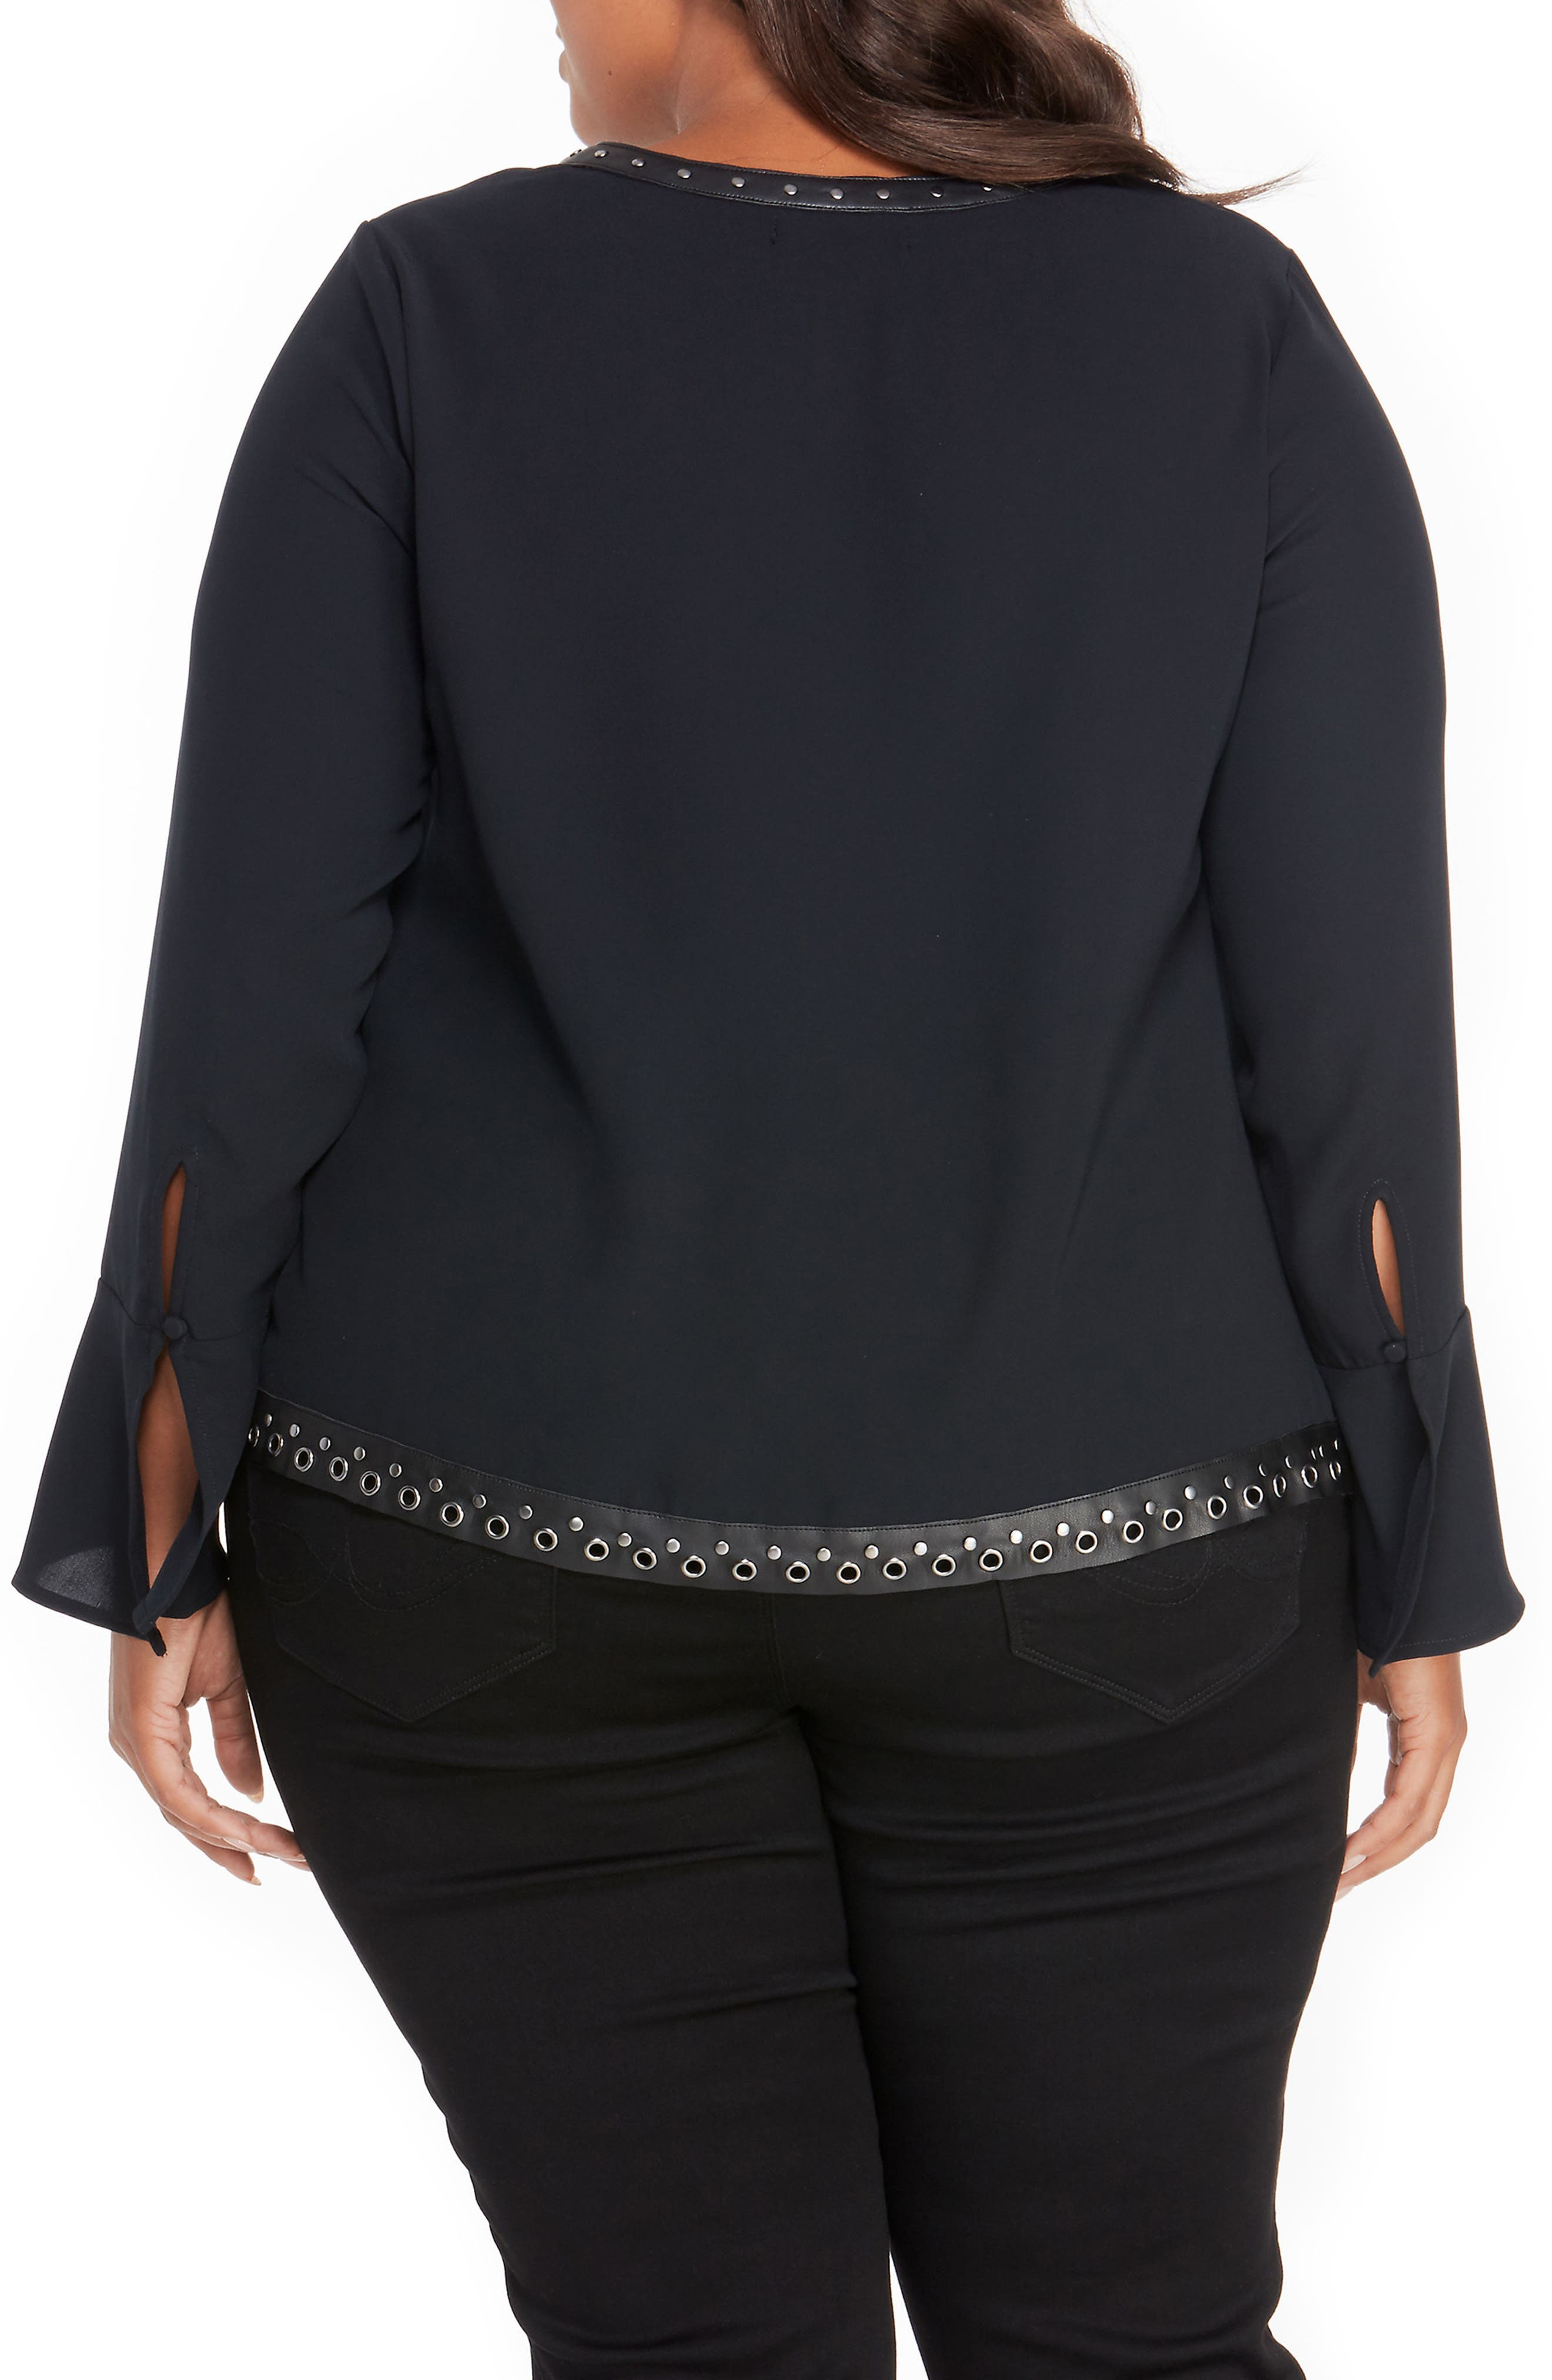 Alternate Image 2  - Rebel Wilson x Angels Studded Faux Leather Trim Top (Plus Size)